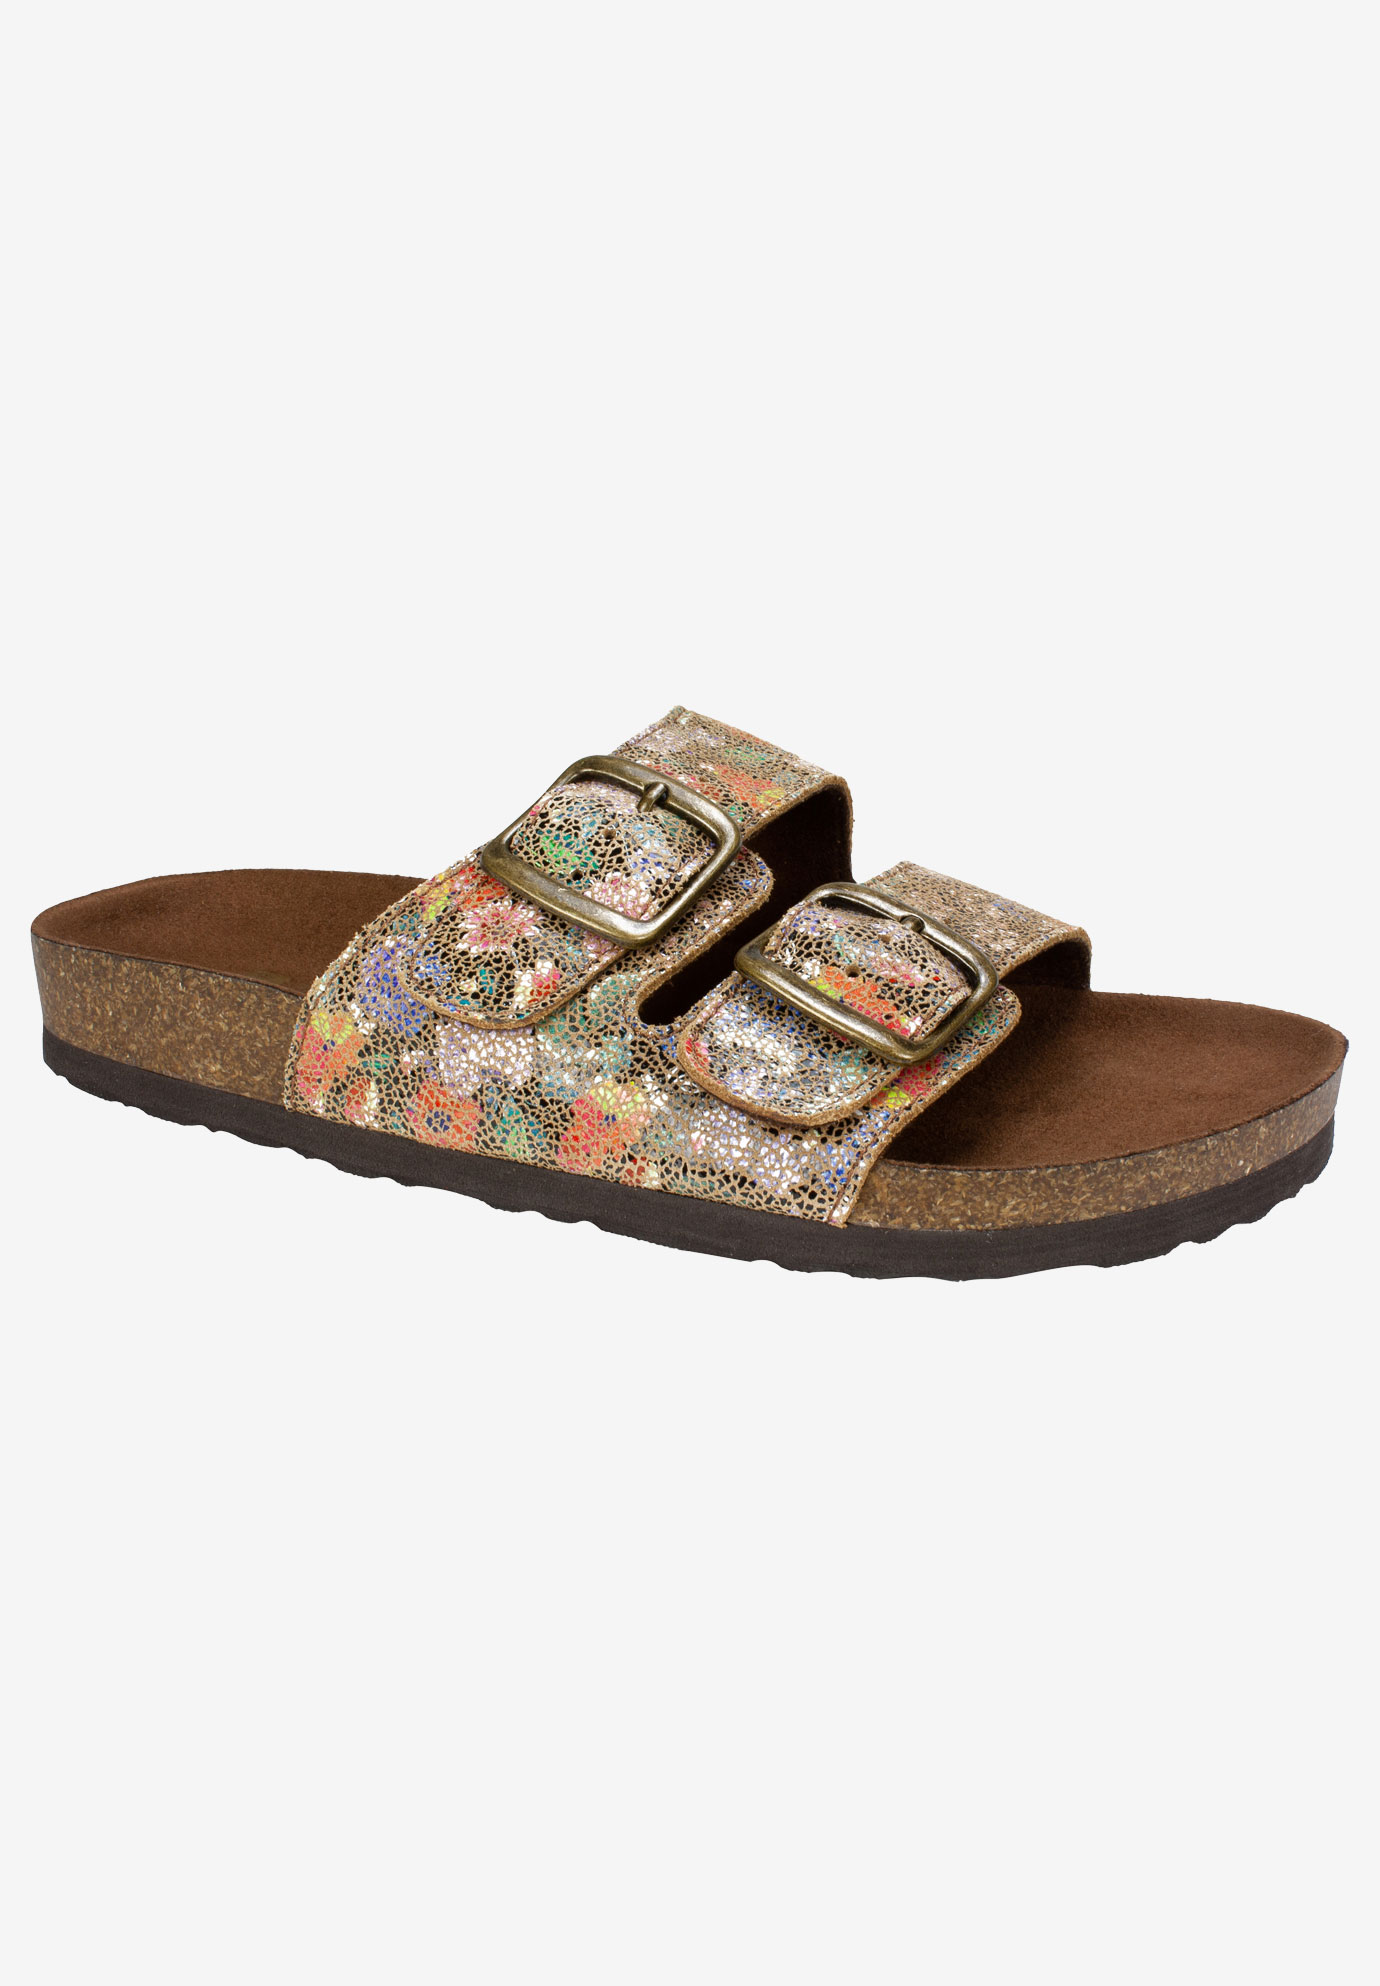 Helga Sandal By White Mountain Plus Size Casual Sandals